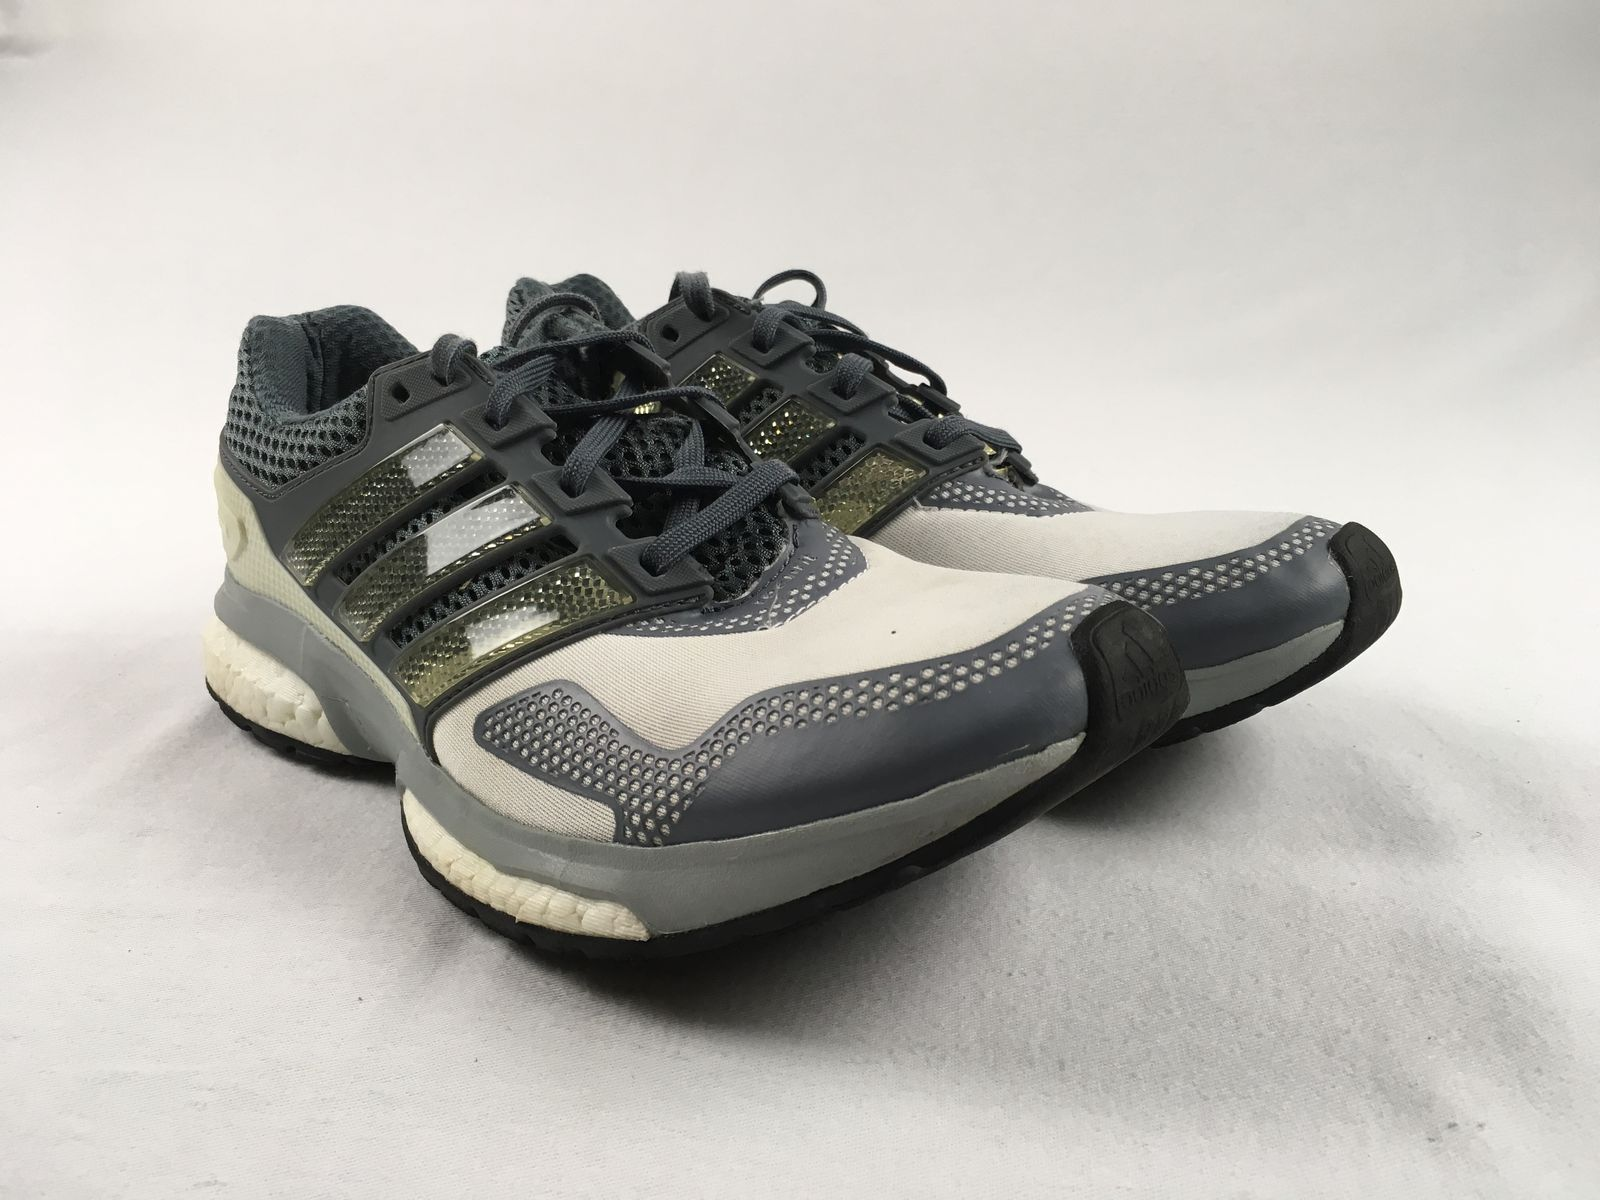 hot sale online 0b92e dd7cd Details about adidas Response Boost - Running, Cross Training (Men s  Multiple Sizes) Used